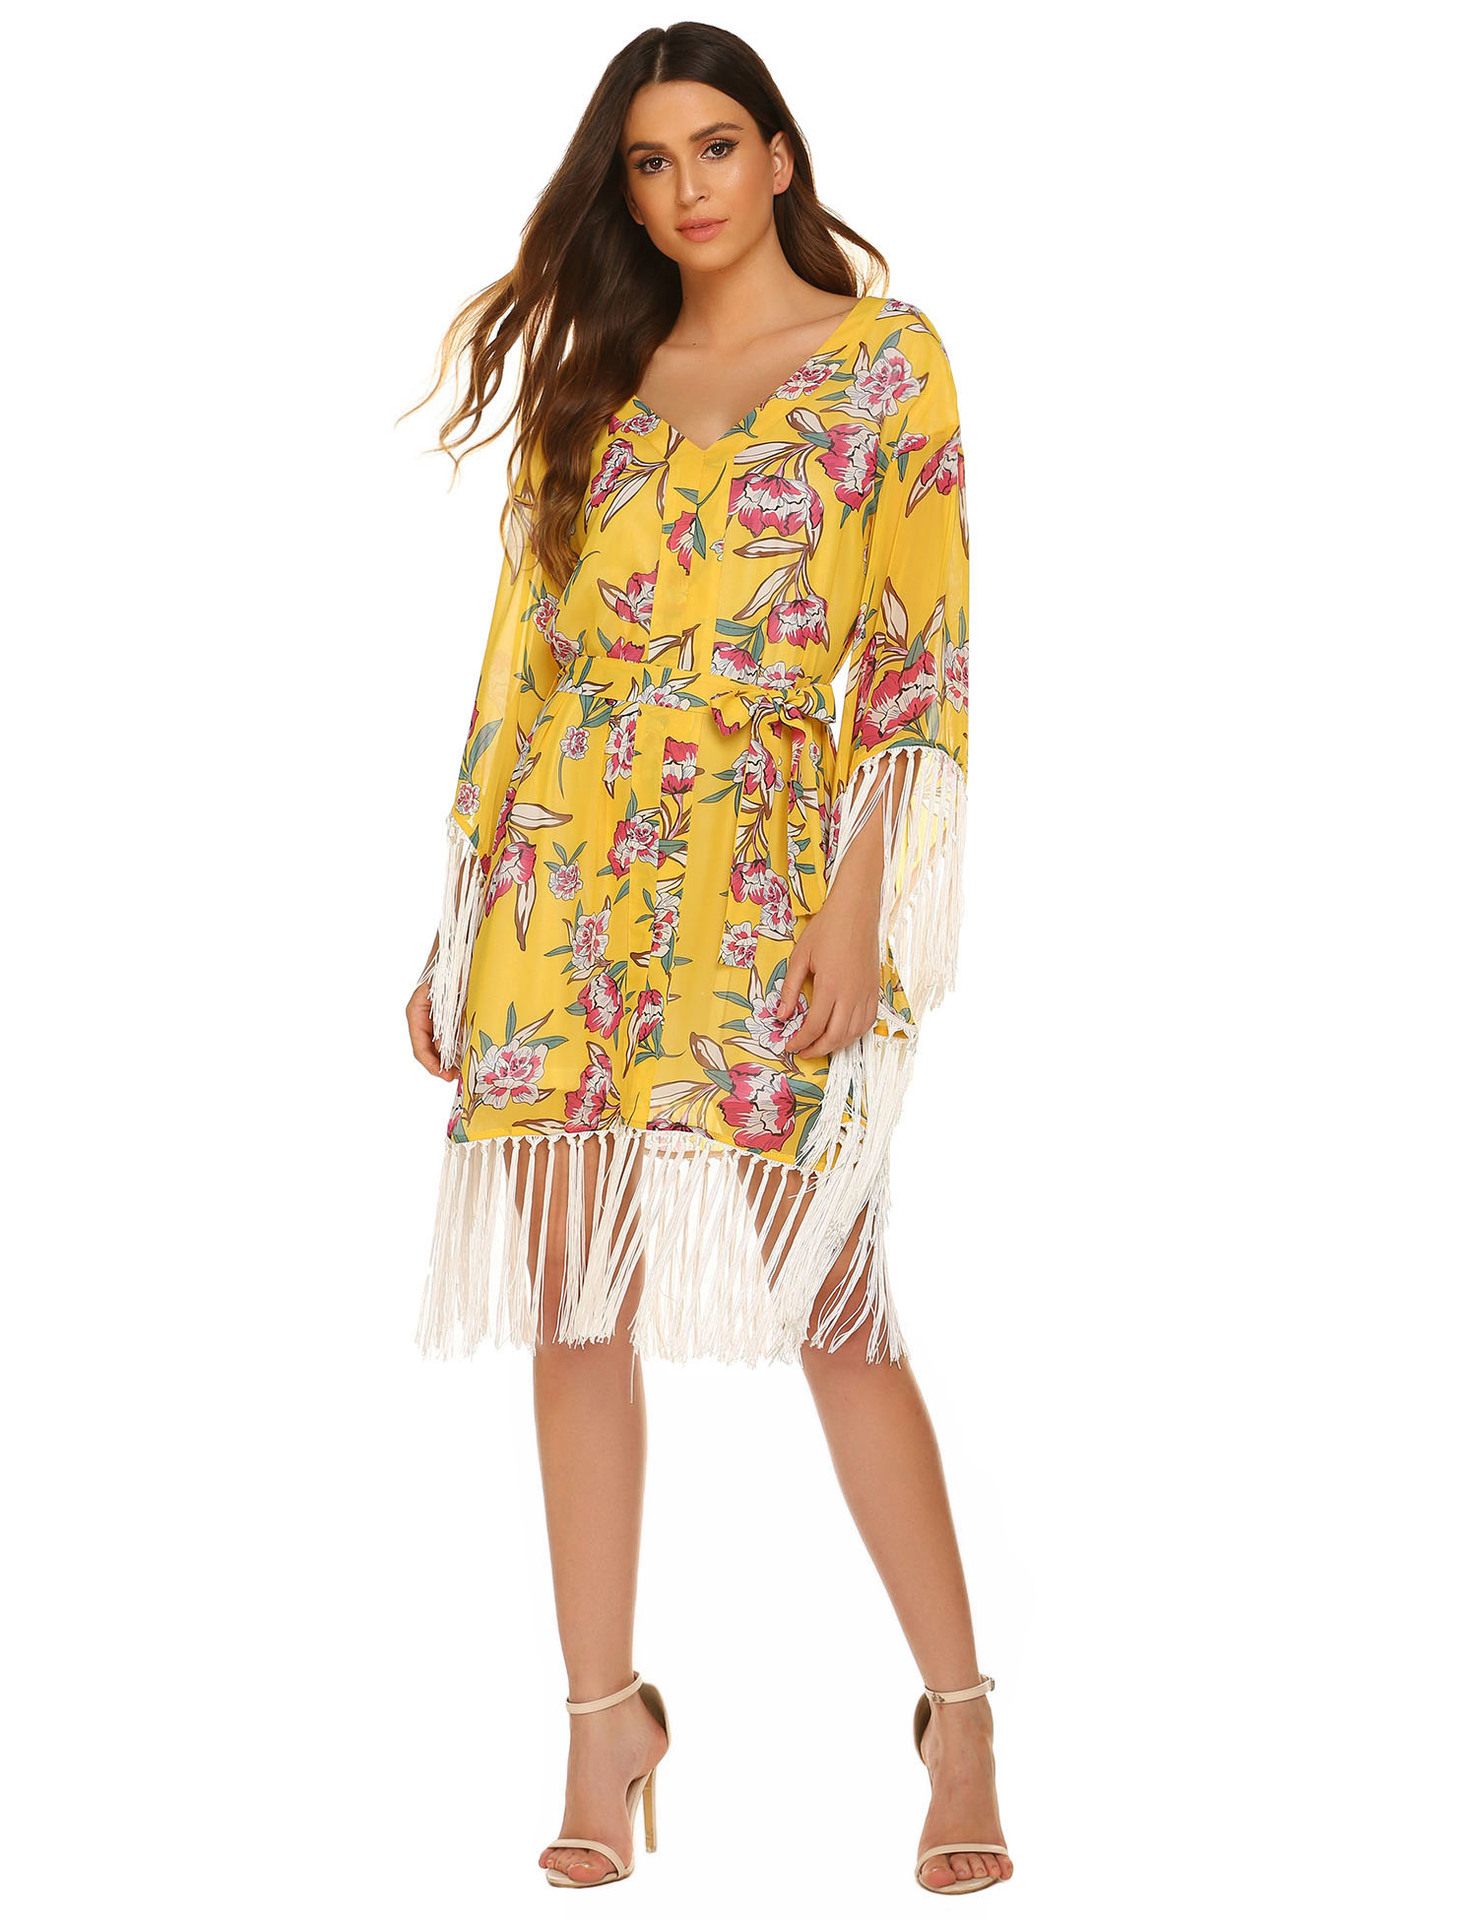 Ladies Casual One Piece Lady Beach Dress In Floral Print Hawaiian Women Dress